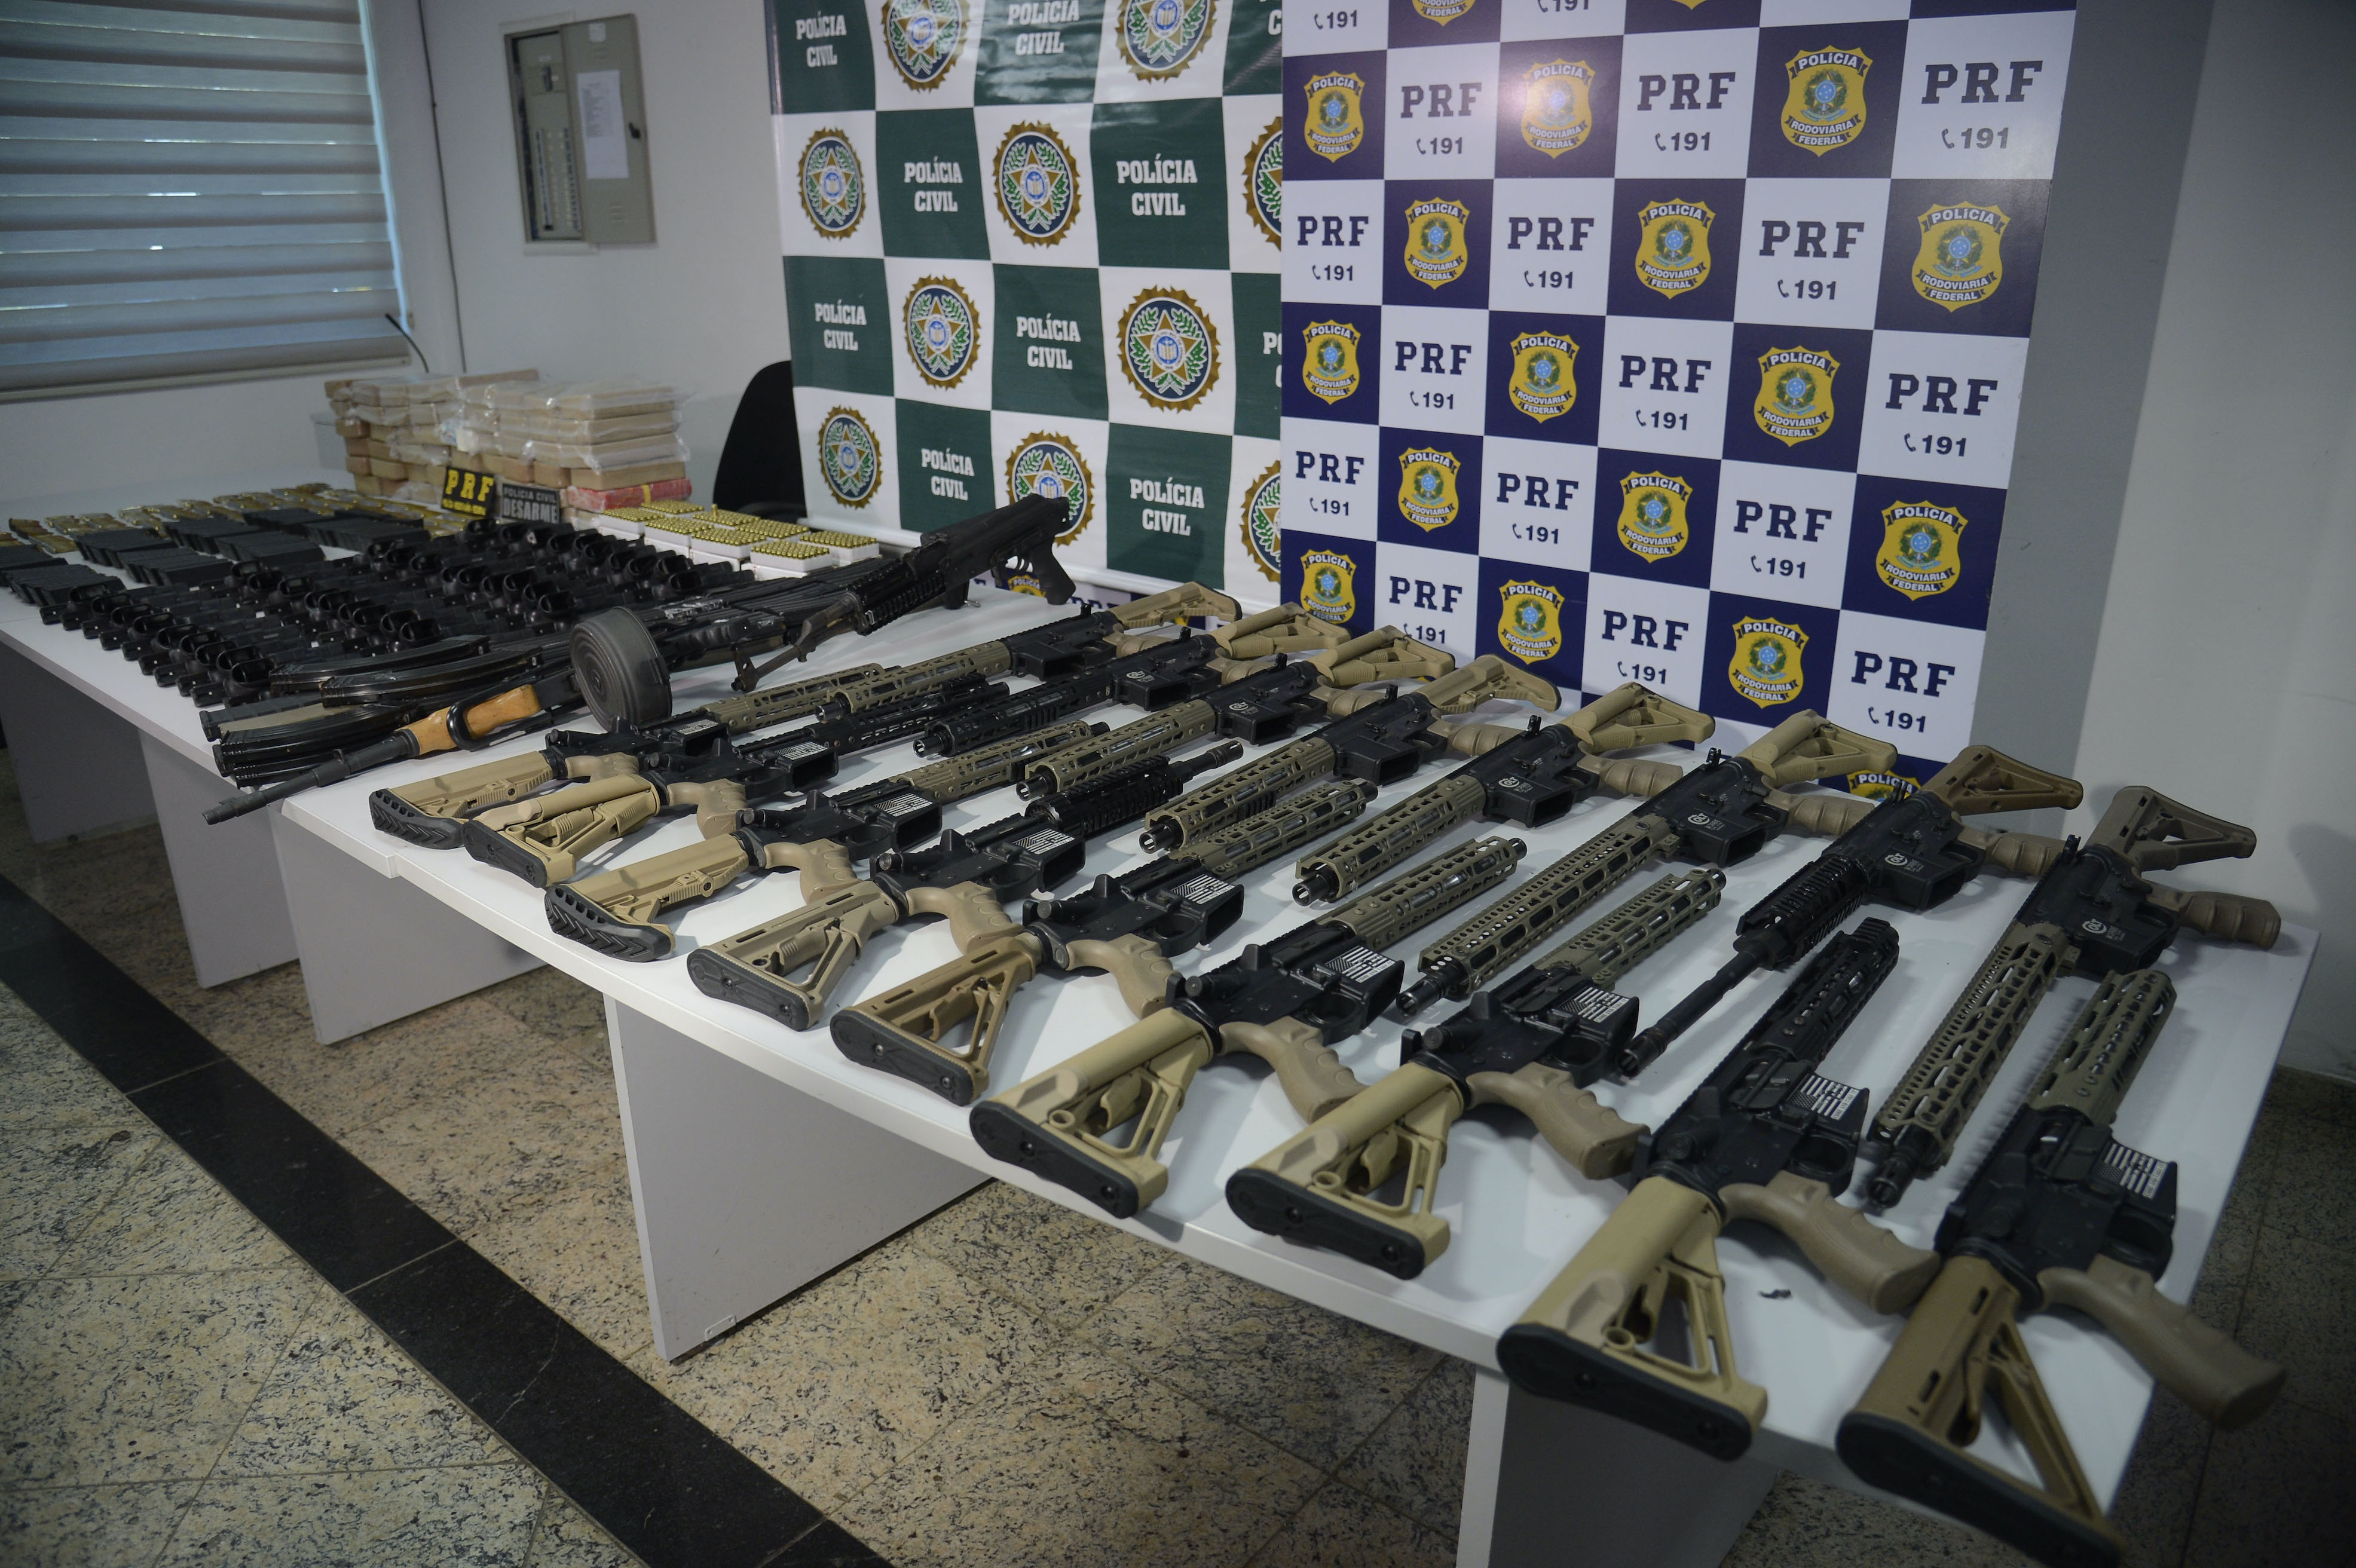 Weapons seized in Rio